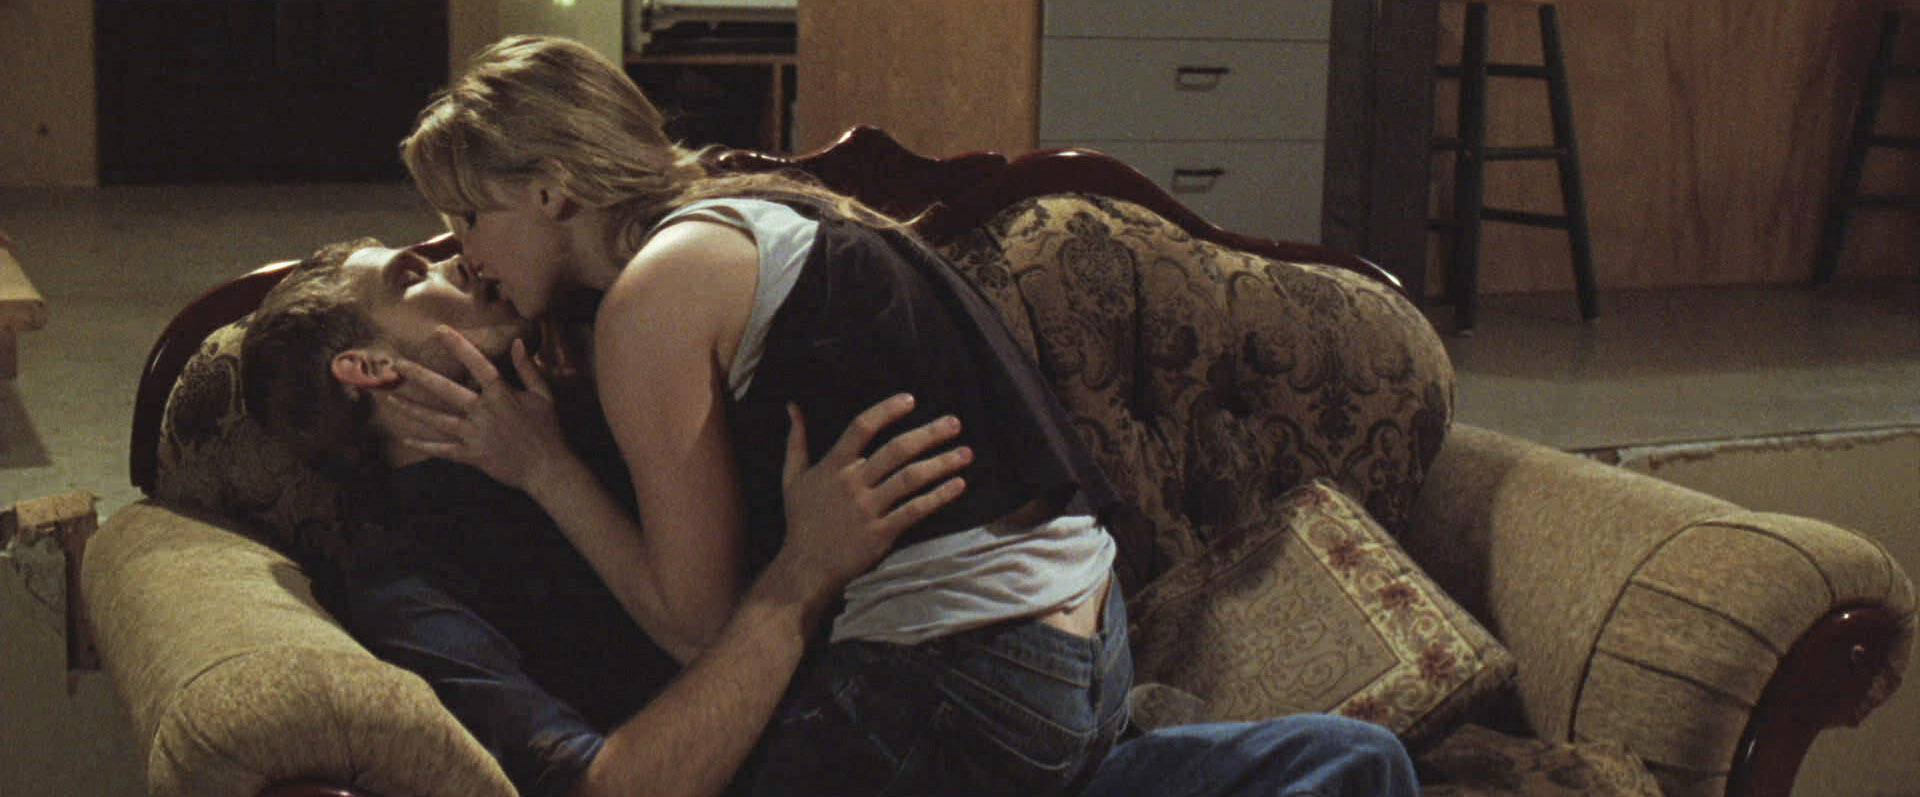 max-thieriot-wife